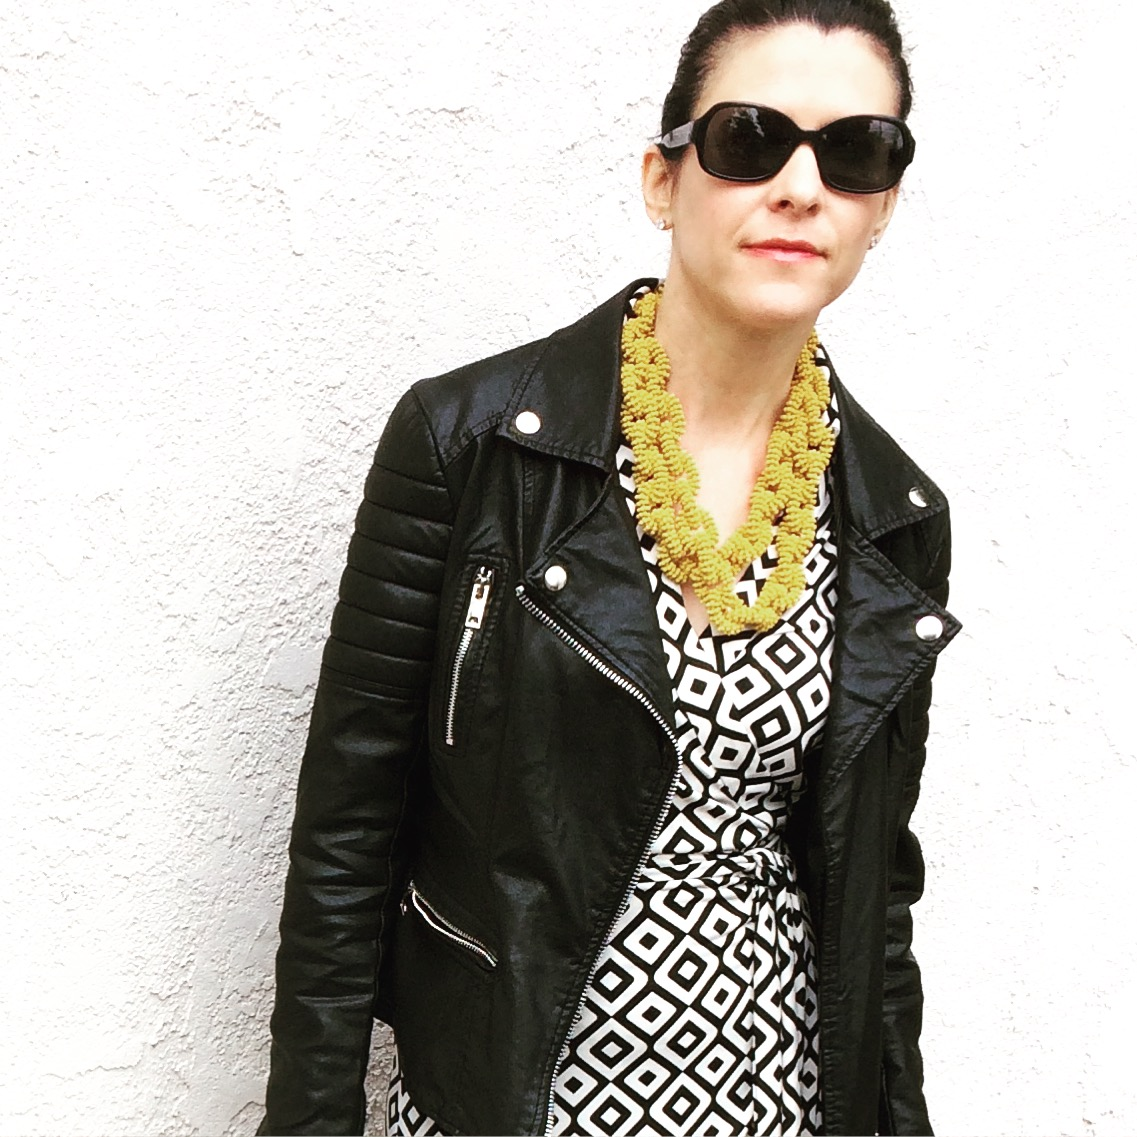 with a moto jacket and wrap dress